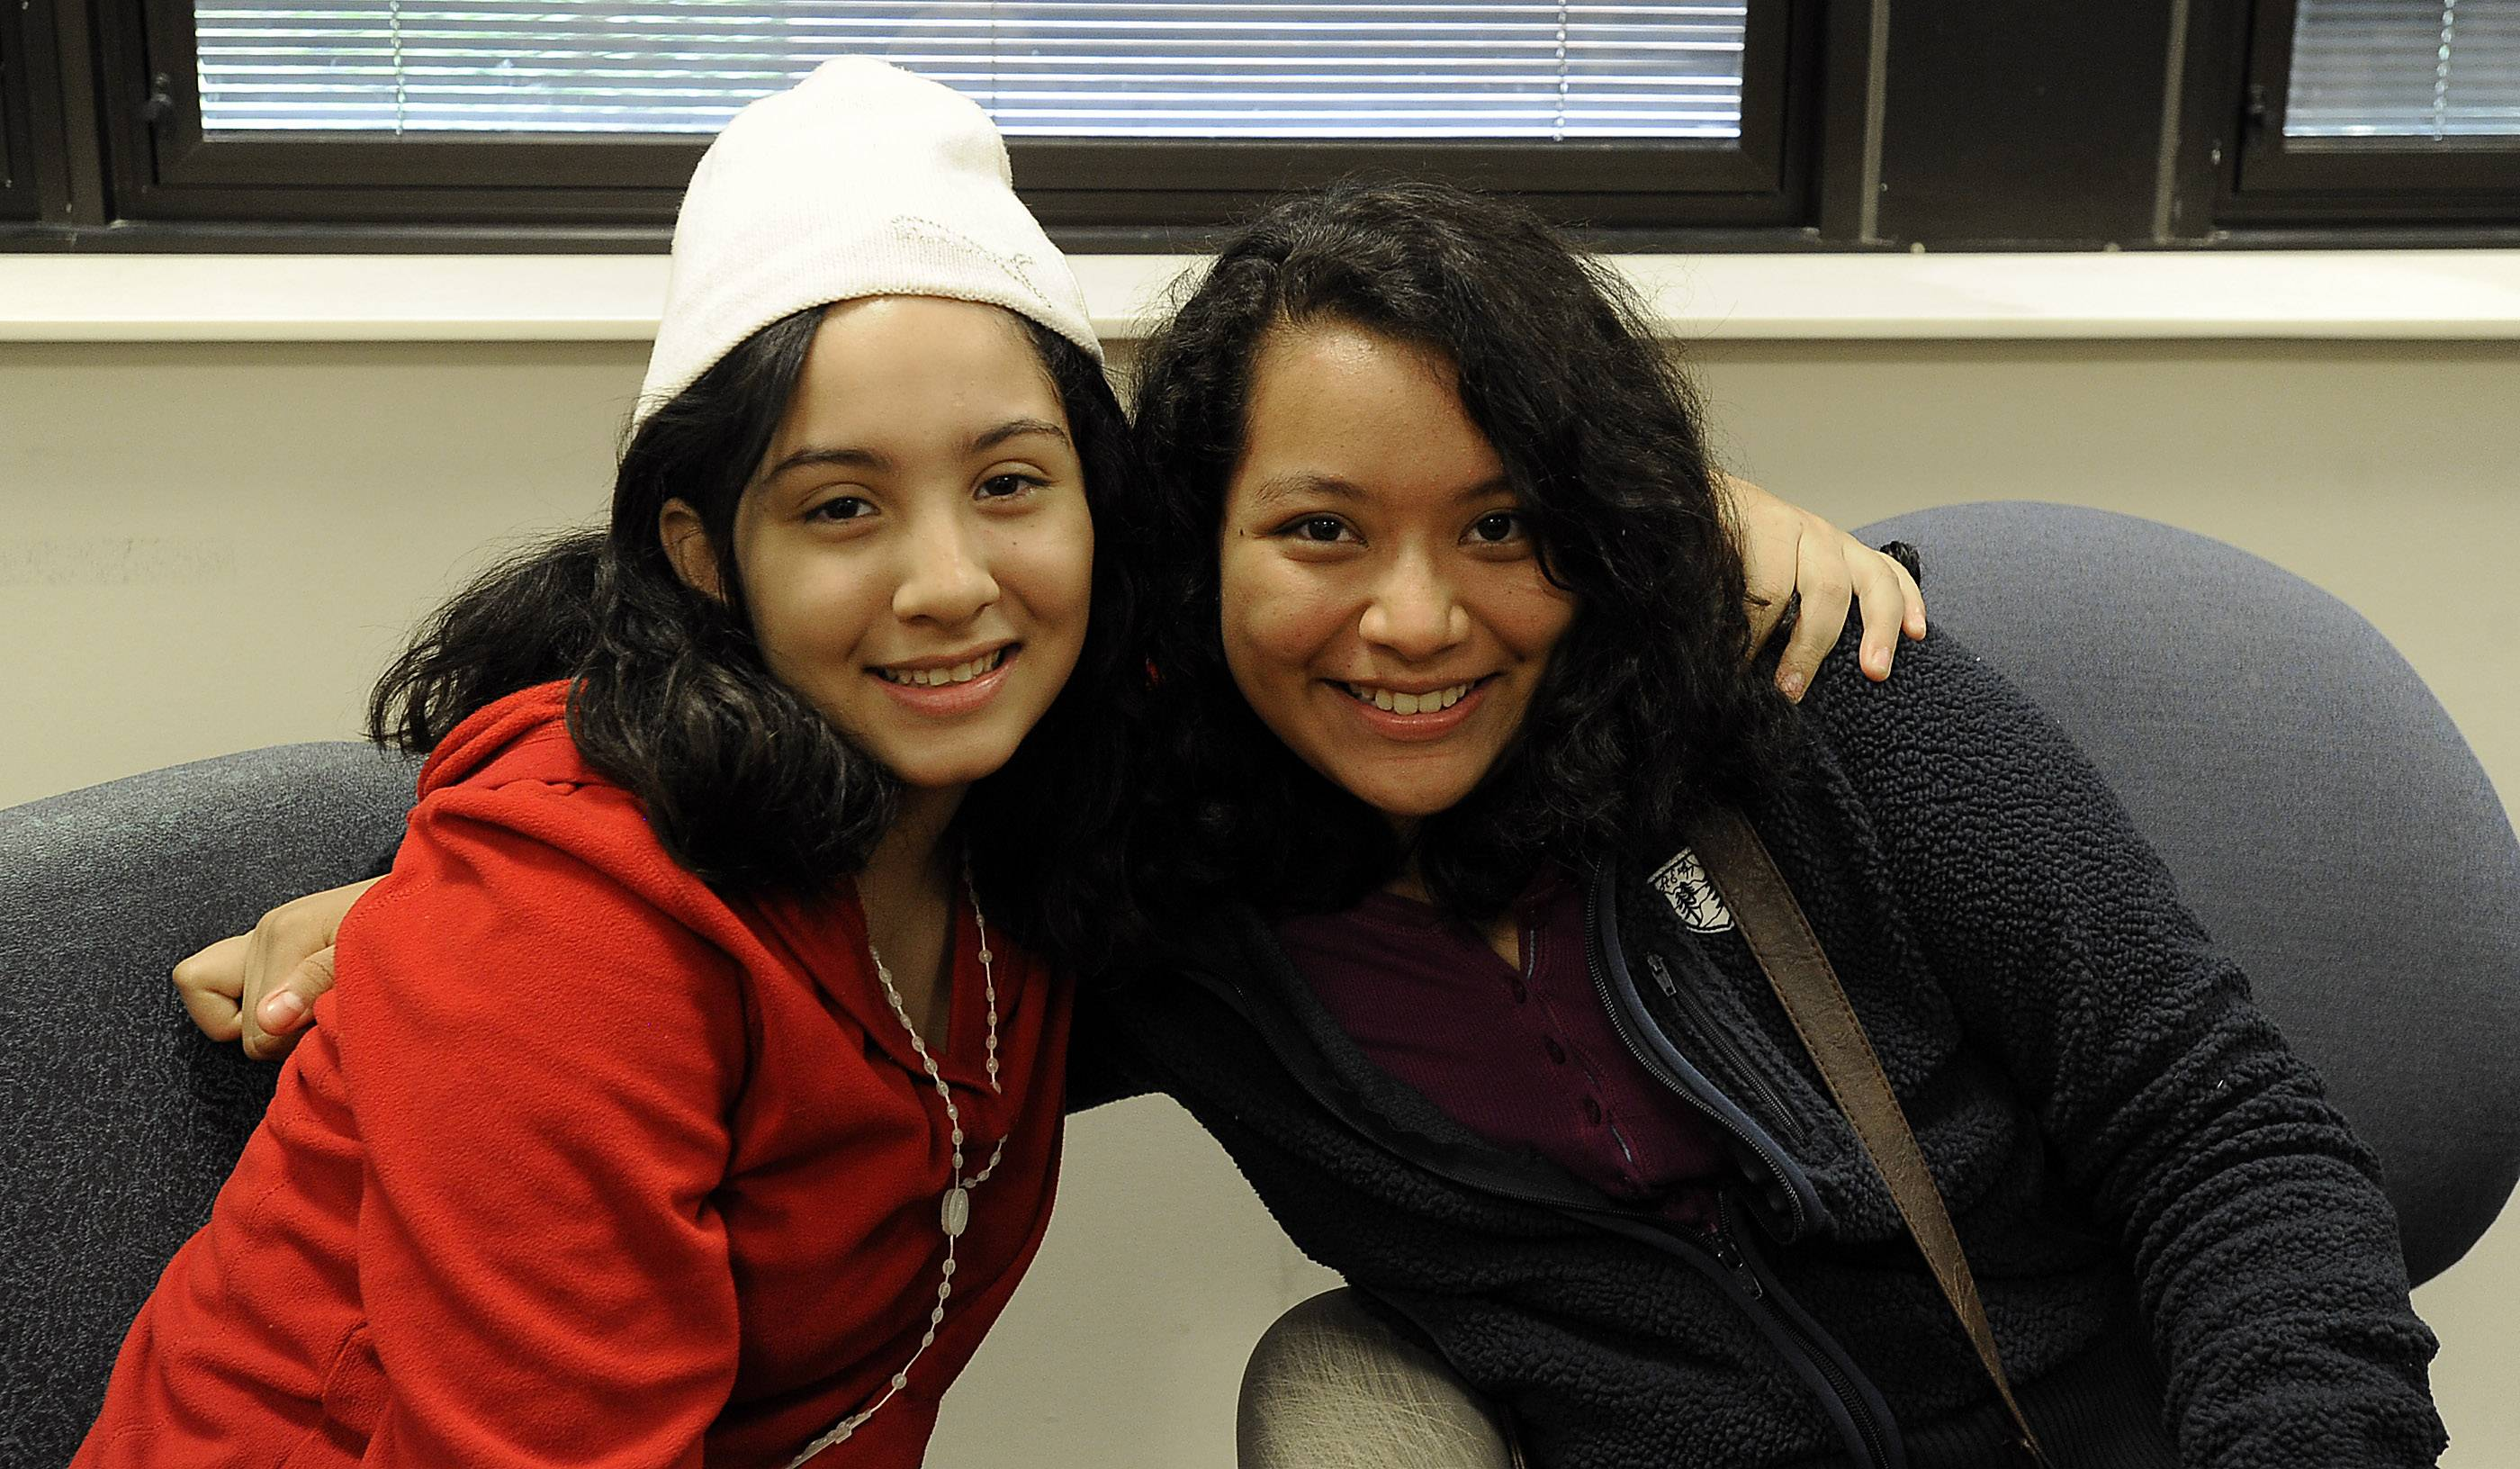 Andrea Escalante, 12, left, and Leslie Salas, 13, both of El Salvador, have only known each other two days but already have become fast friends. The two flew from El Salvador to Chicago on Tuesday, their first trip on a plane and first time away from their home country.